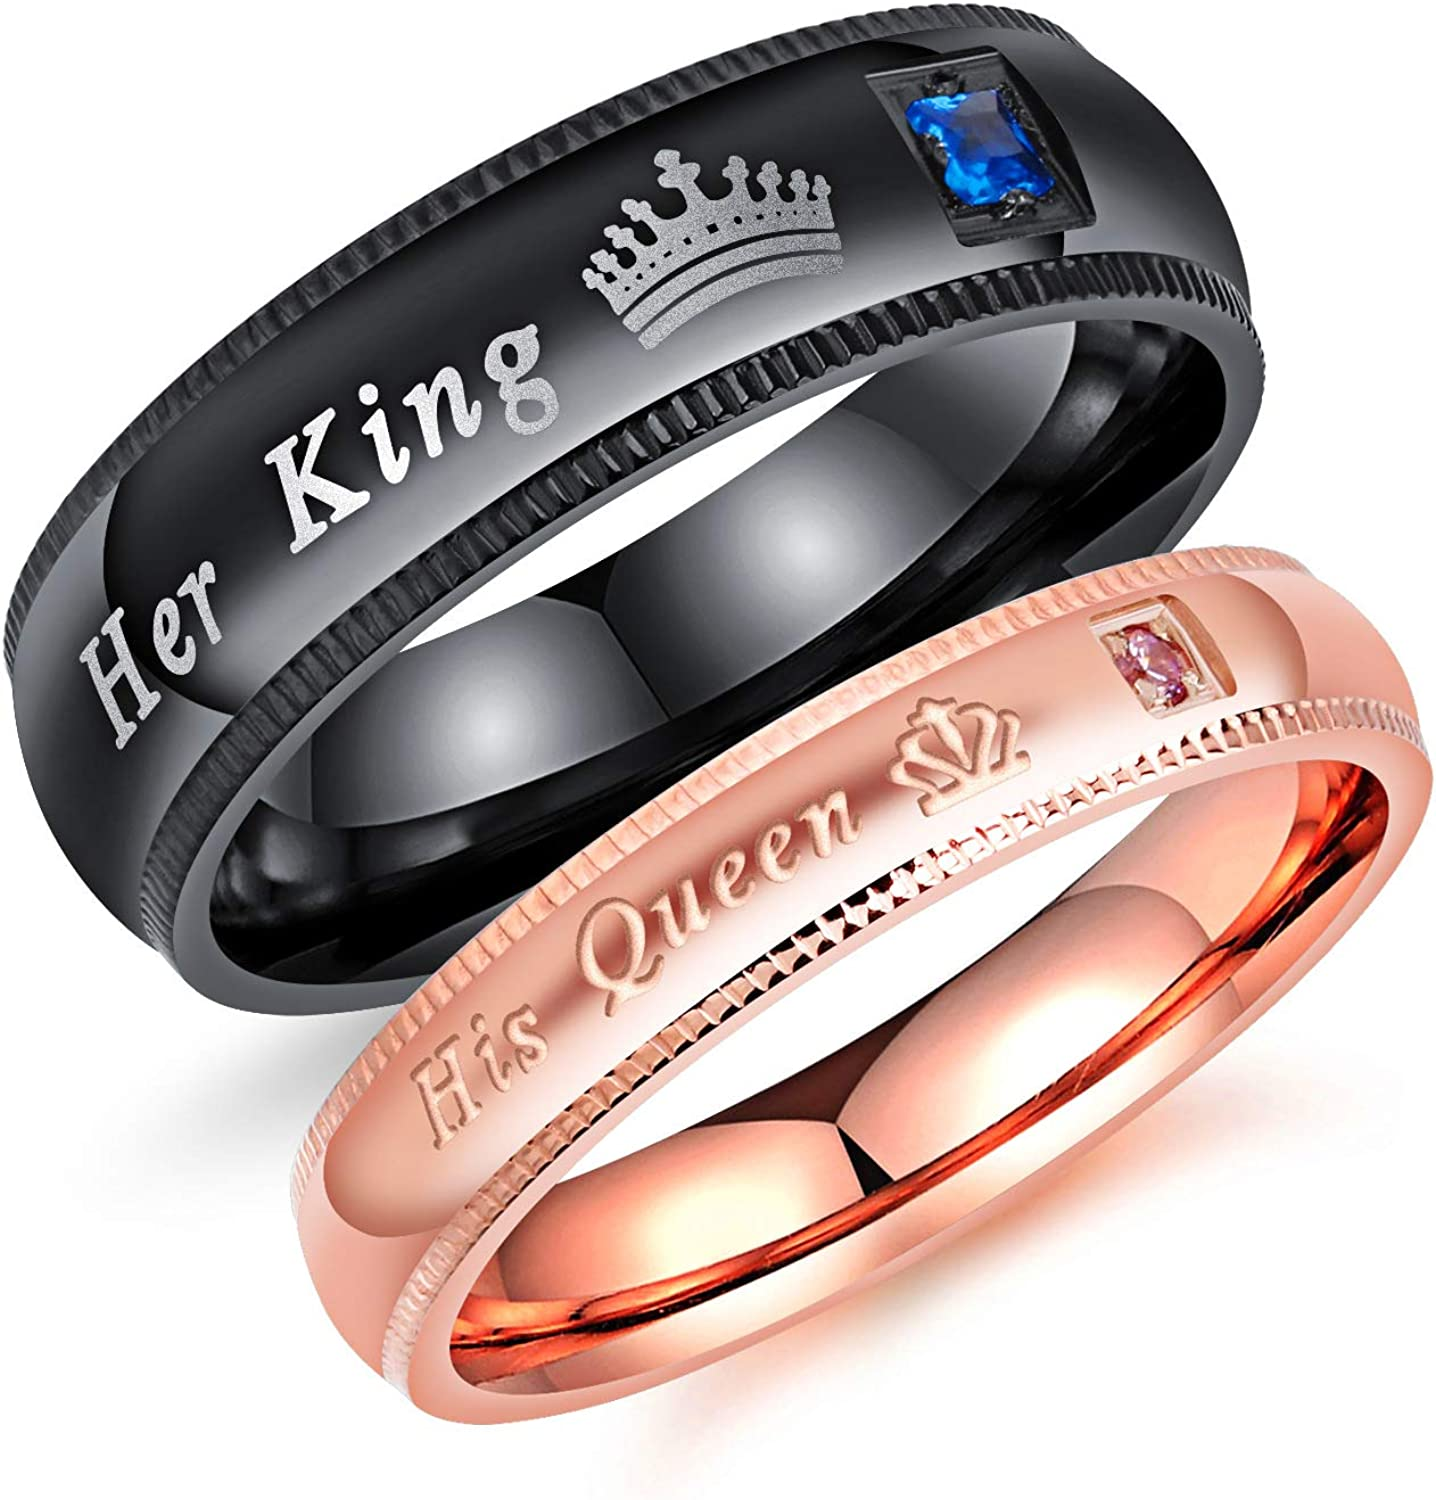 Shuxy 2pcs Matching Ring Couple Ring Pair Lovers Band Set Titanium Steel Ring Promise Rings Cubic Zirconia Ring His /& Her Ring You Forever Love Top Ring Anniversary Ring for Wedding Engagement Gift